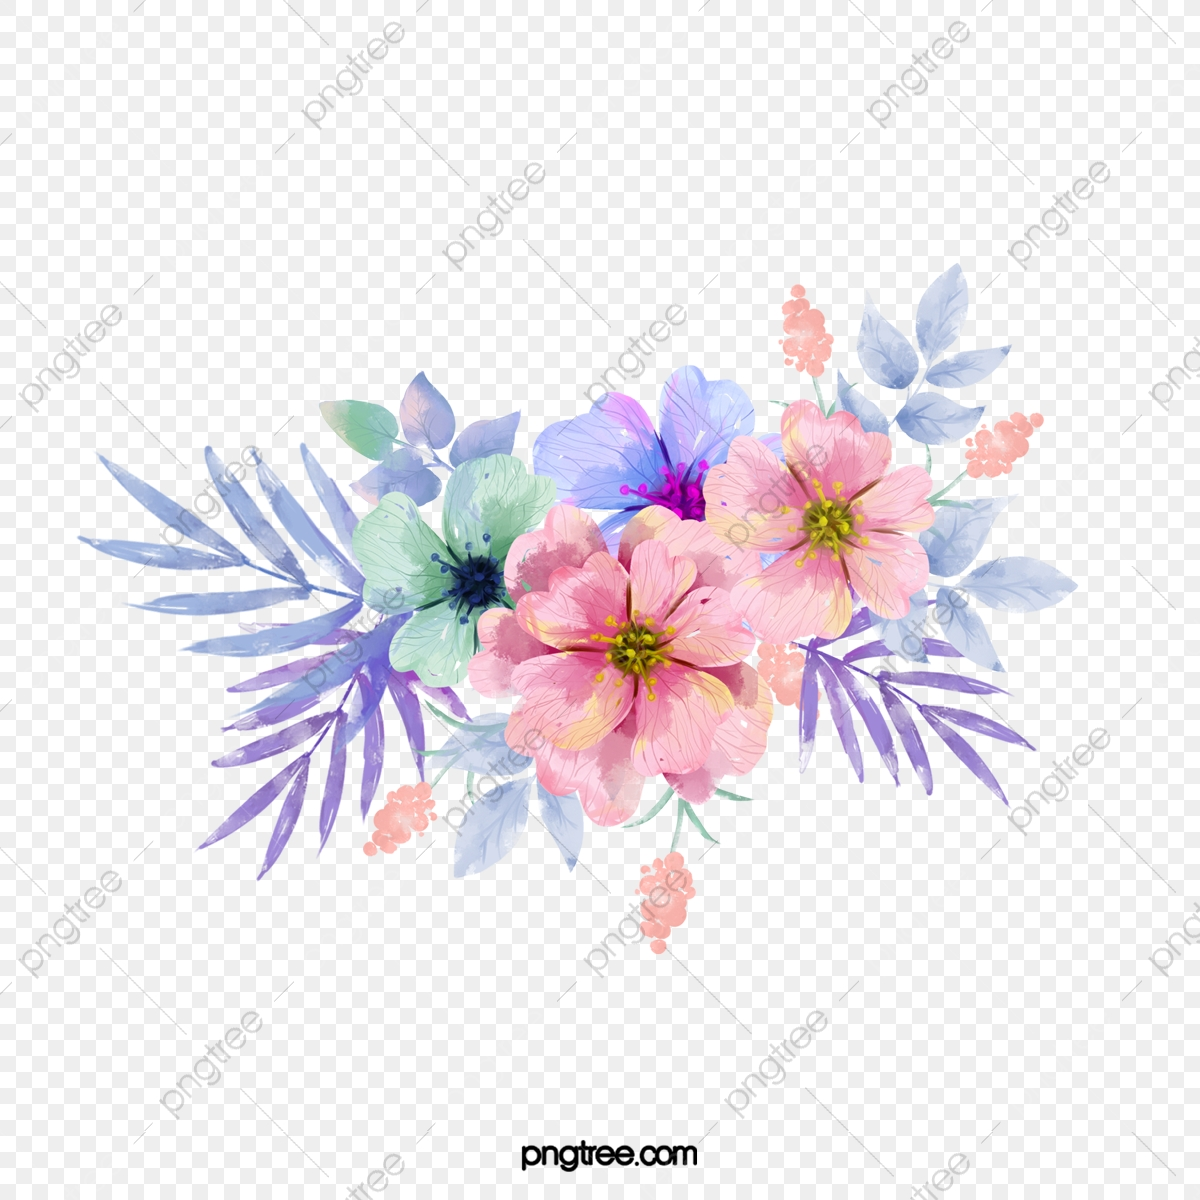 Flower Png Images Vector And Psd Files Free Download On Pngtree